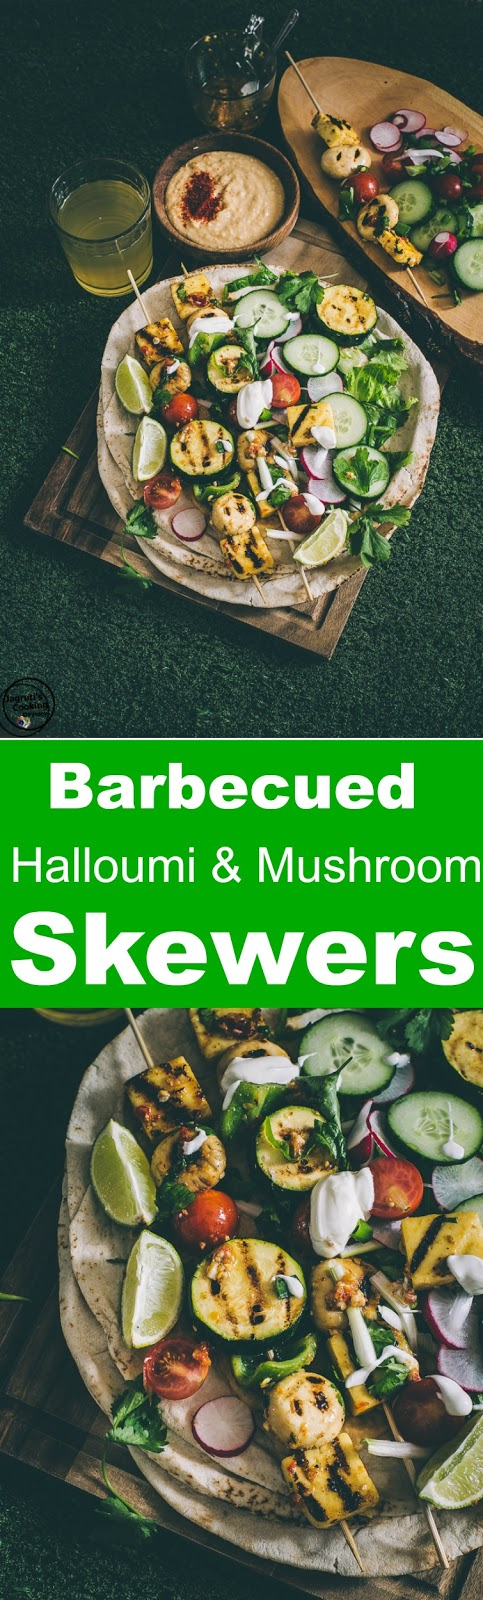 Barbecued Halloumi and Mushroom Skewers